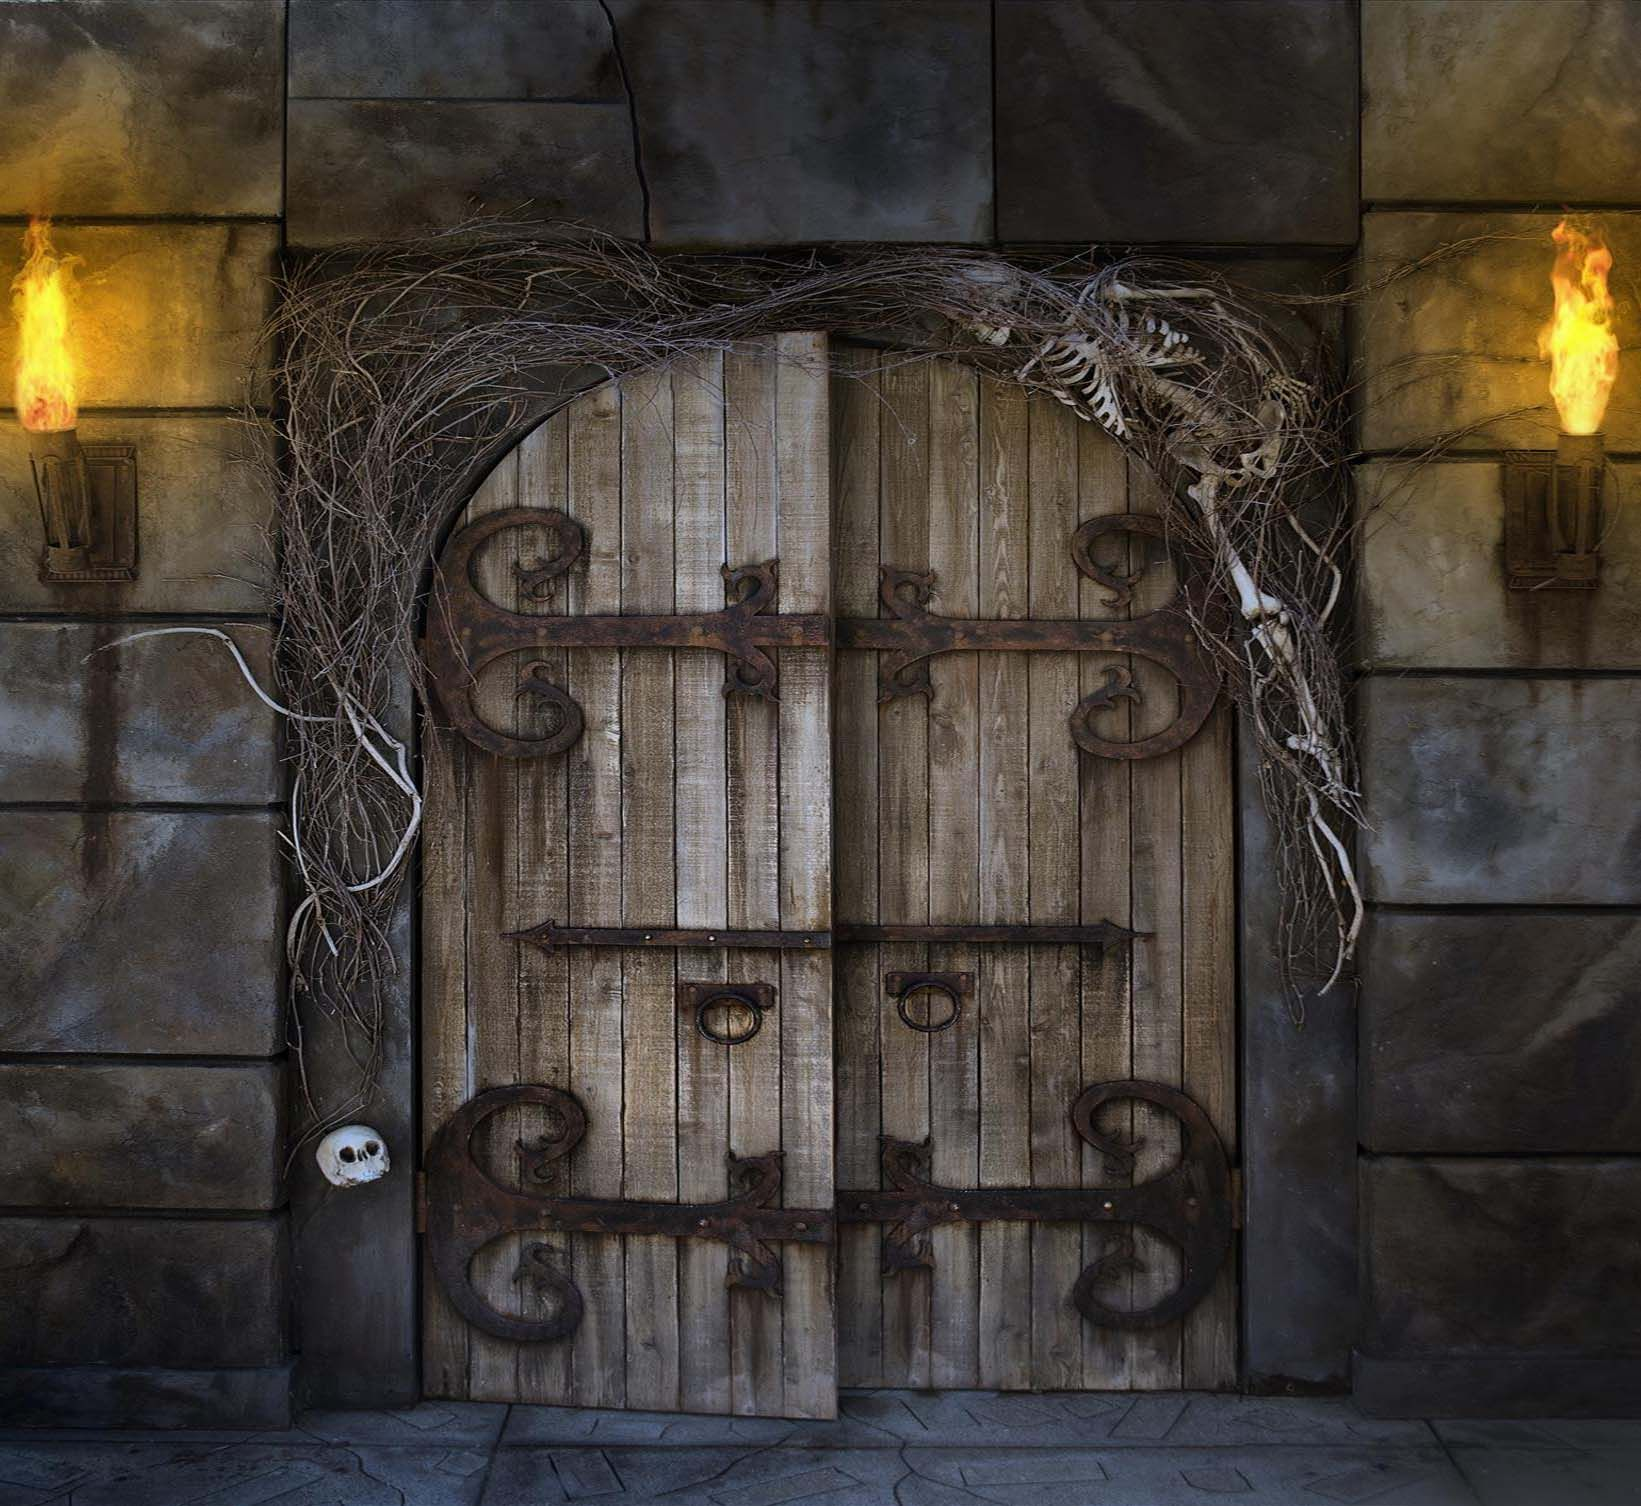 Scary Stories Horror Palace Scary stuff to read Pinterest Scary - Scary Door Decorations For Halloween